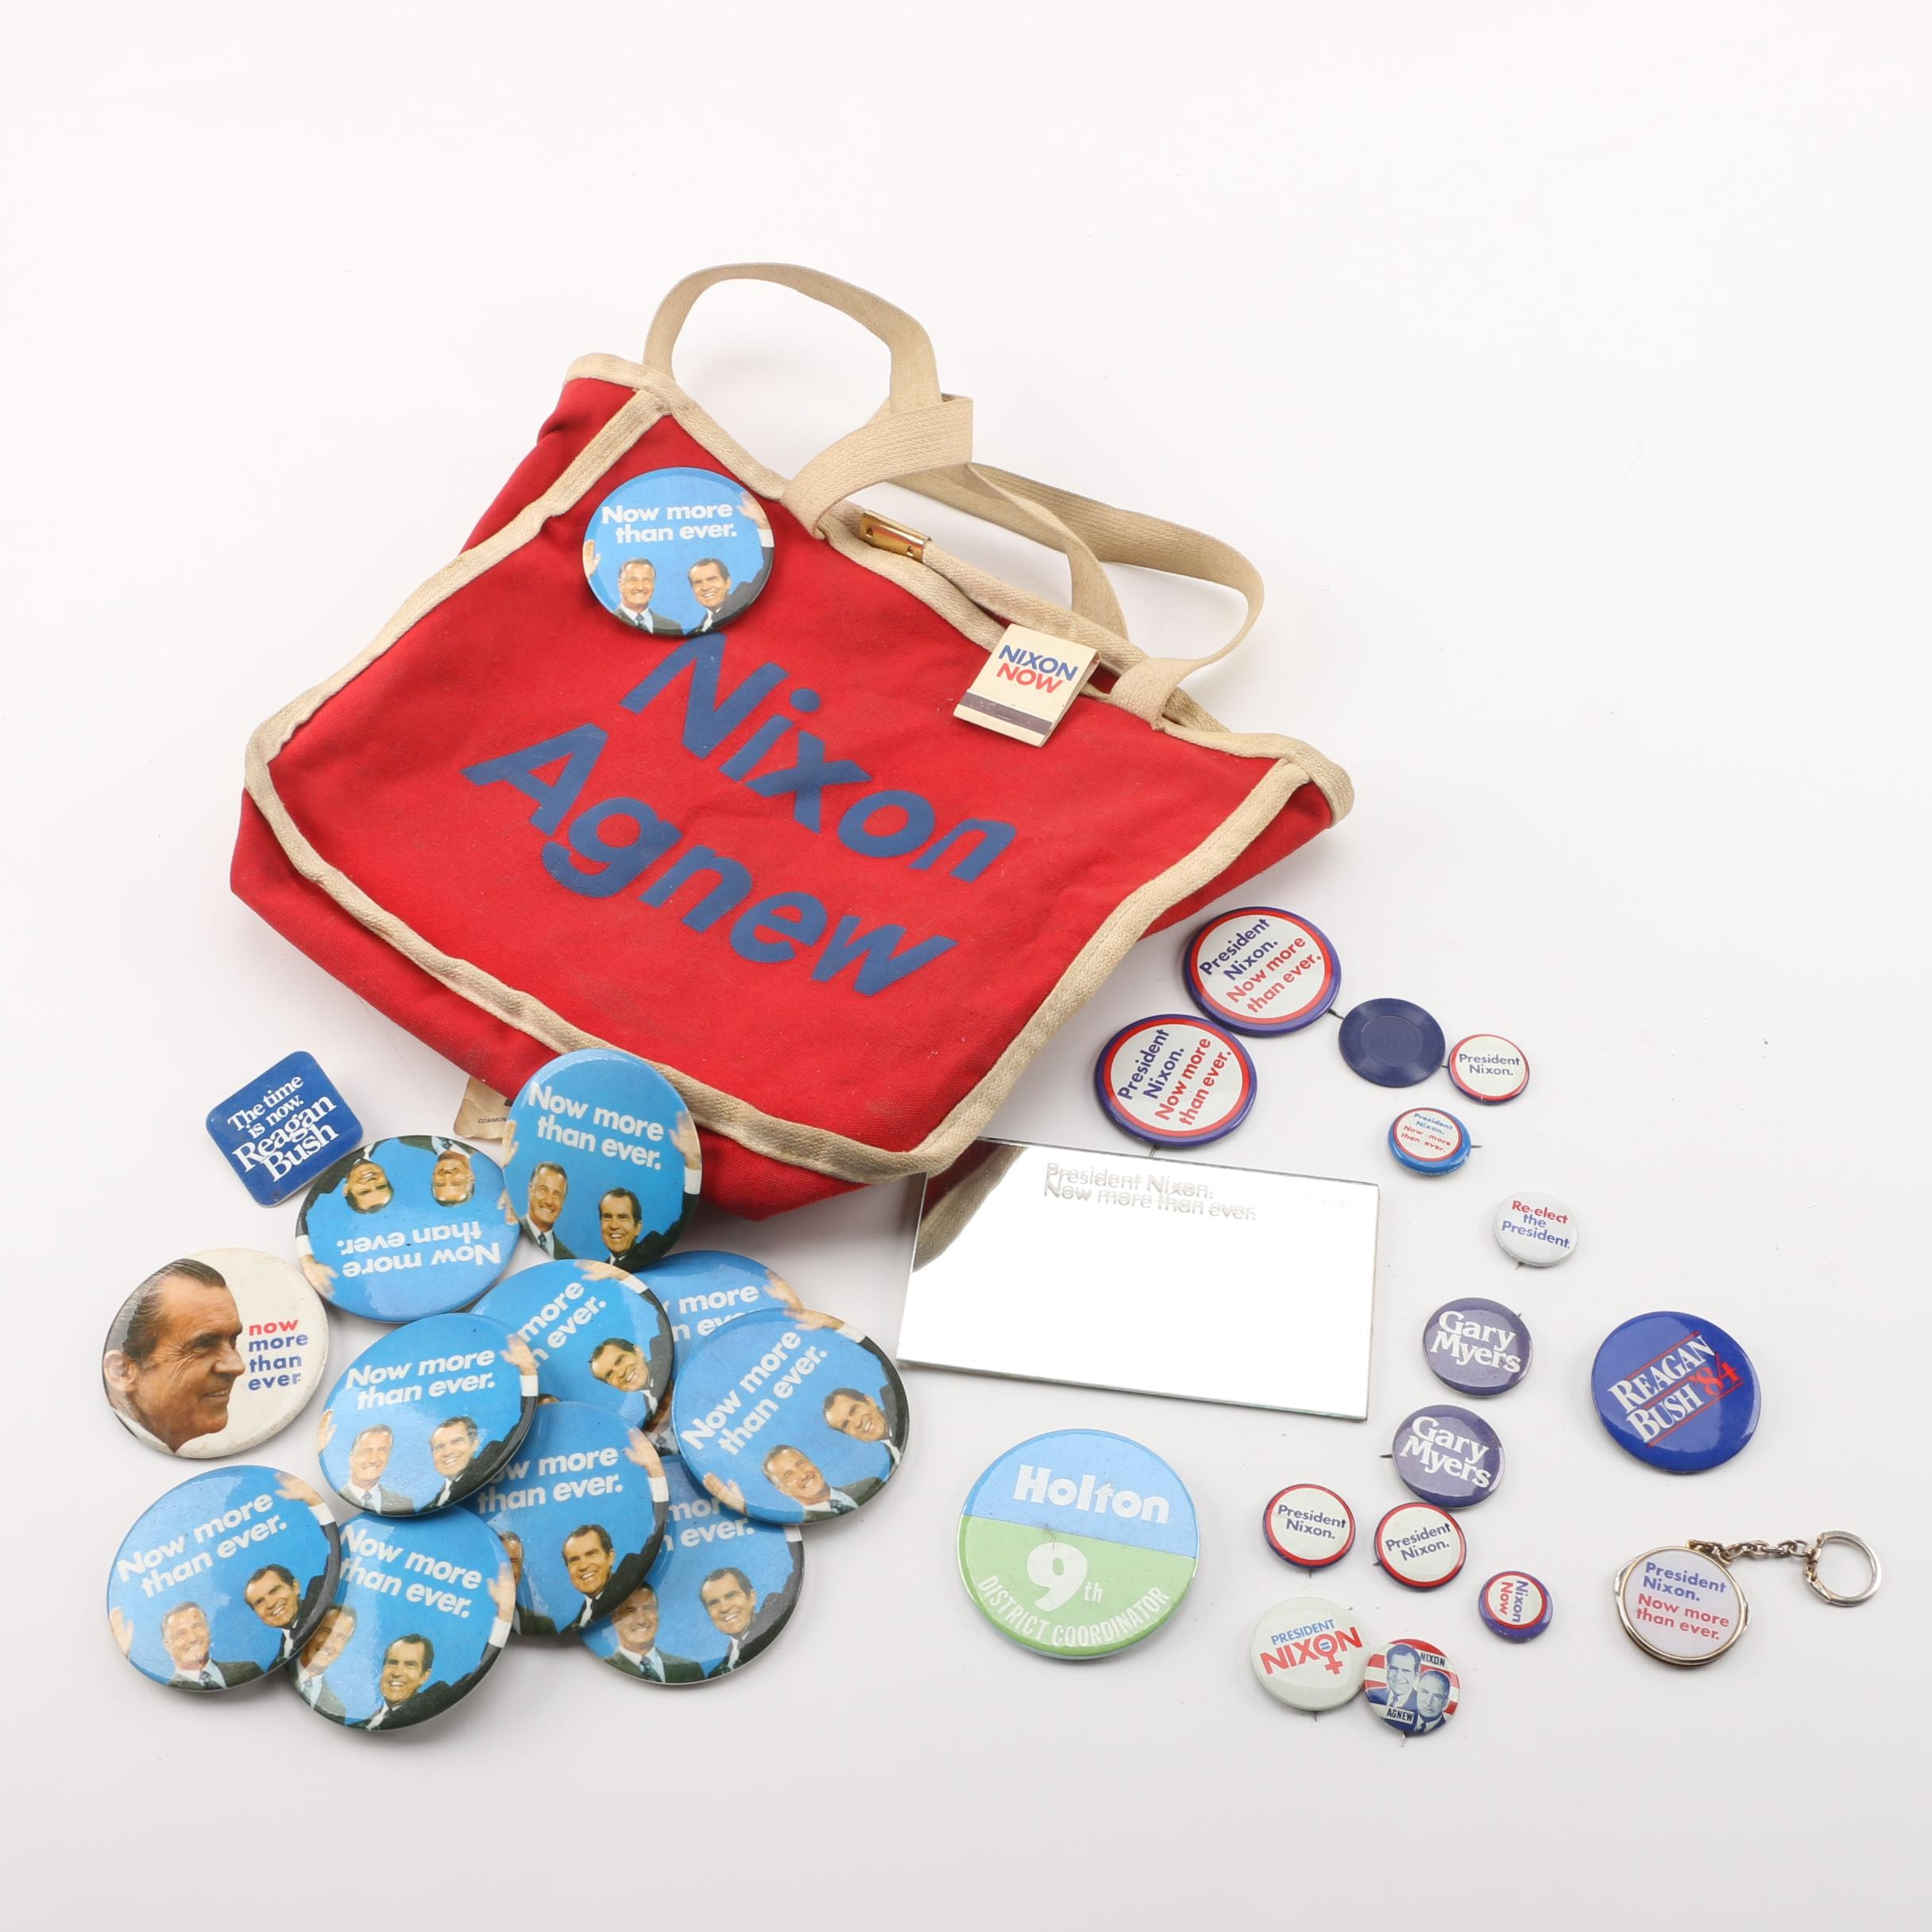 Nixon/Agnew Canvas Bag with Selection of Presidential Campaign Pins and Mirror